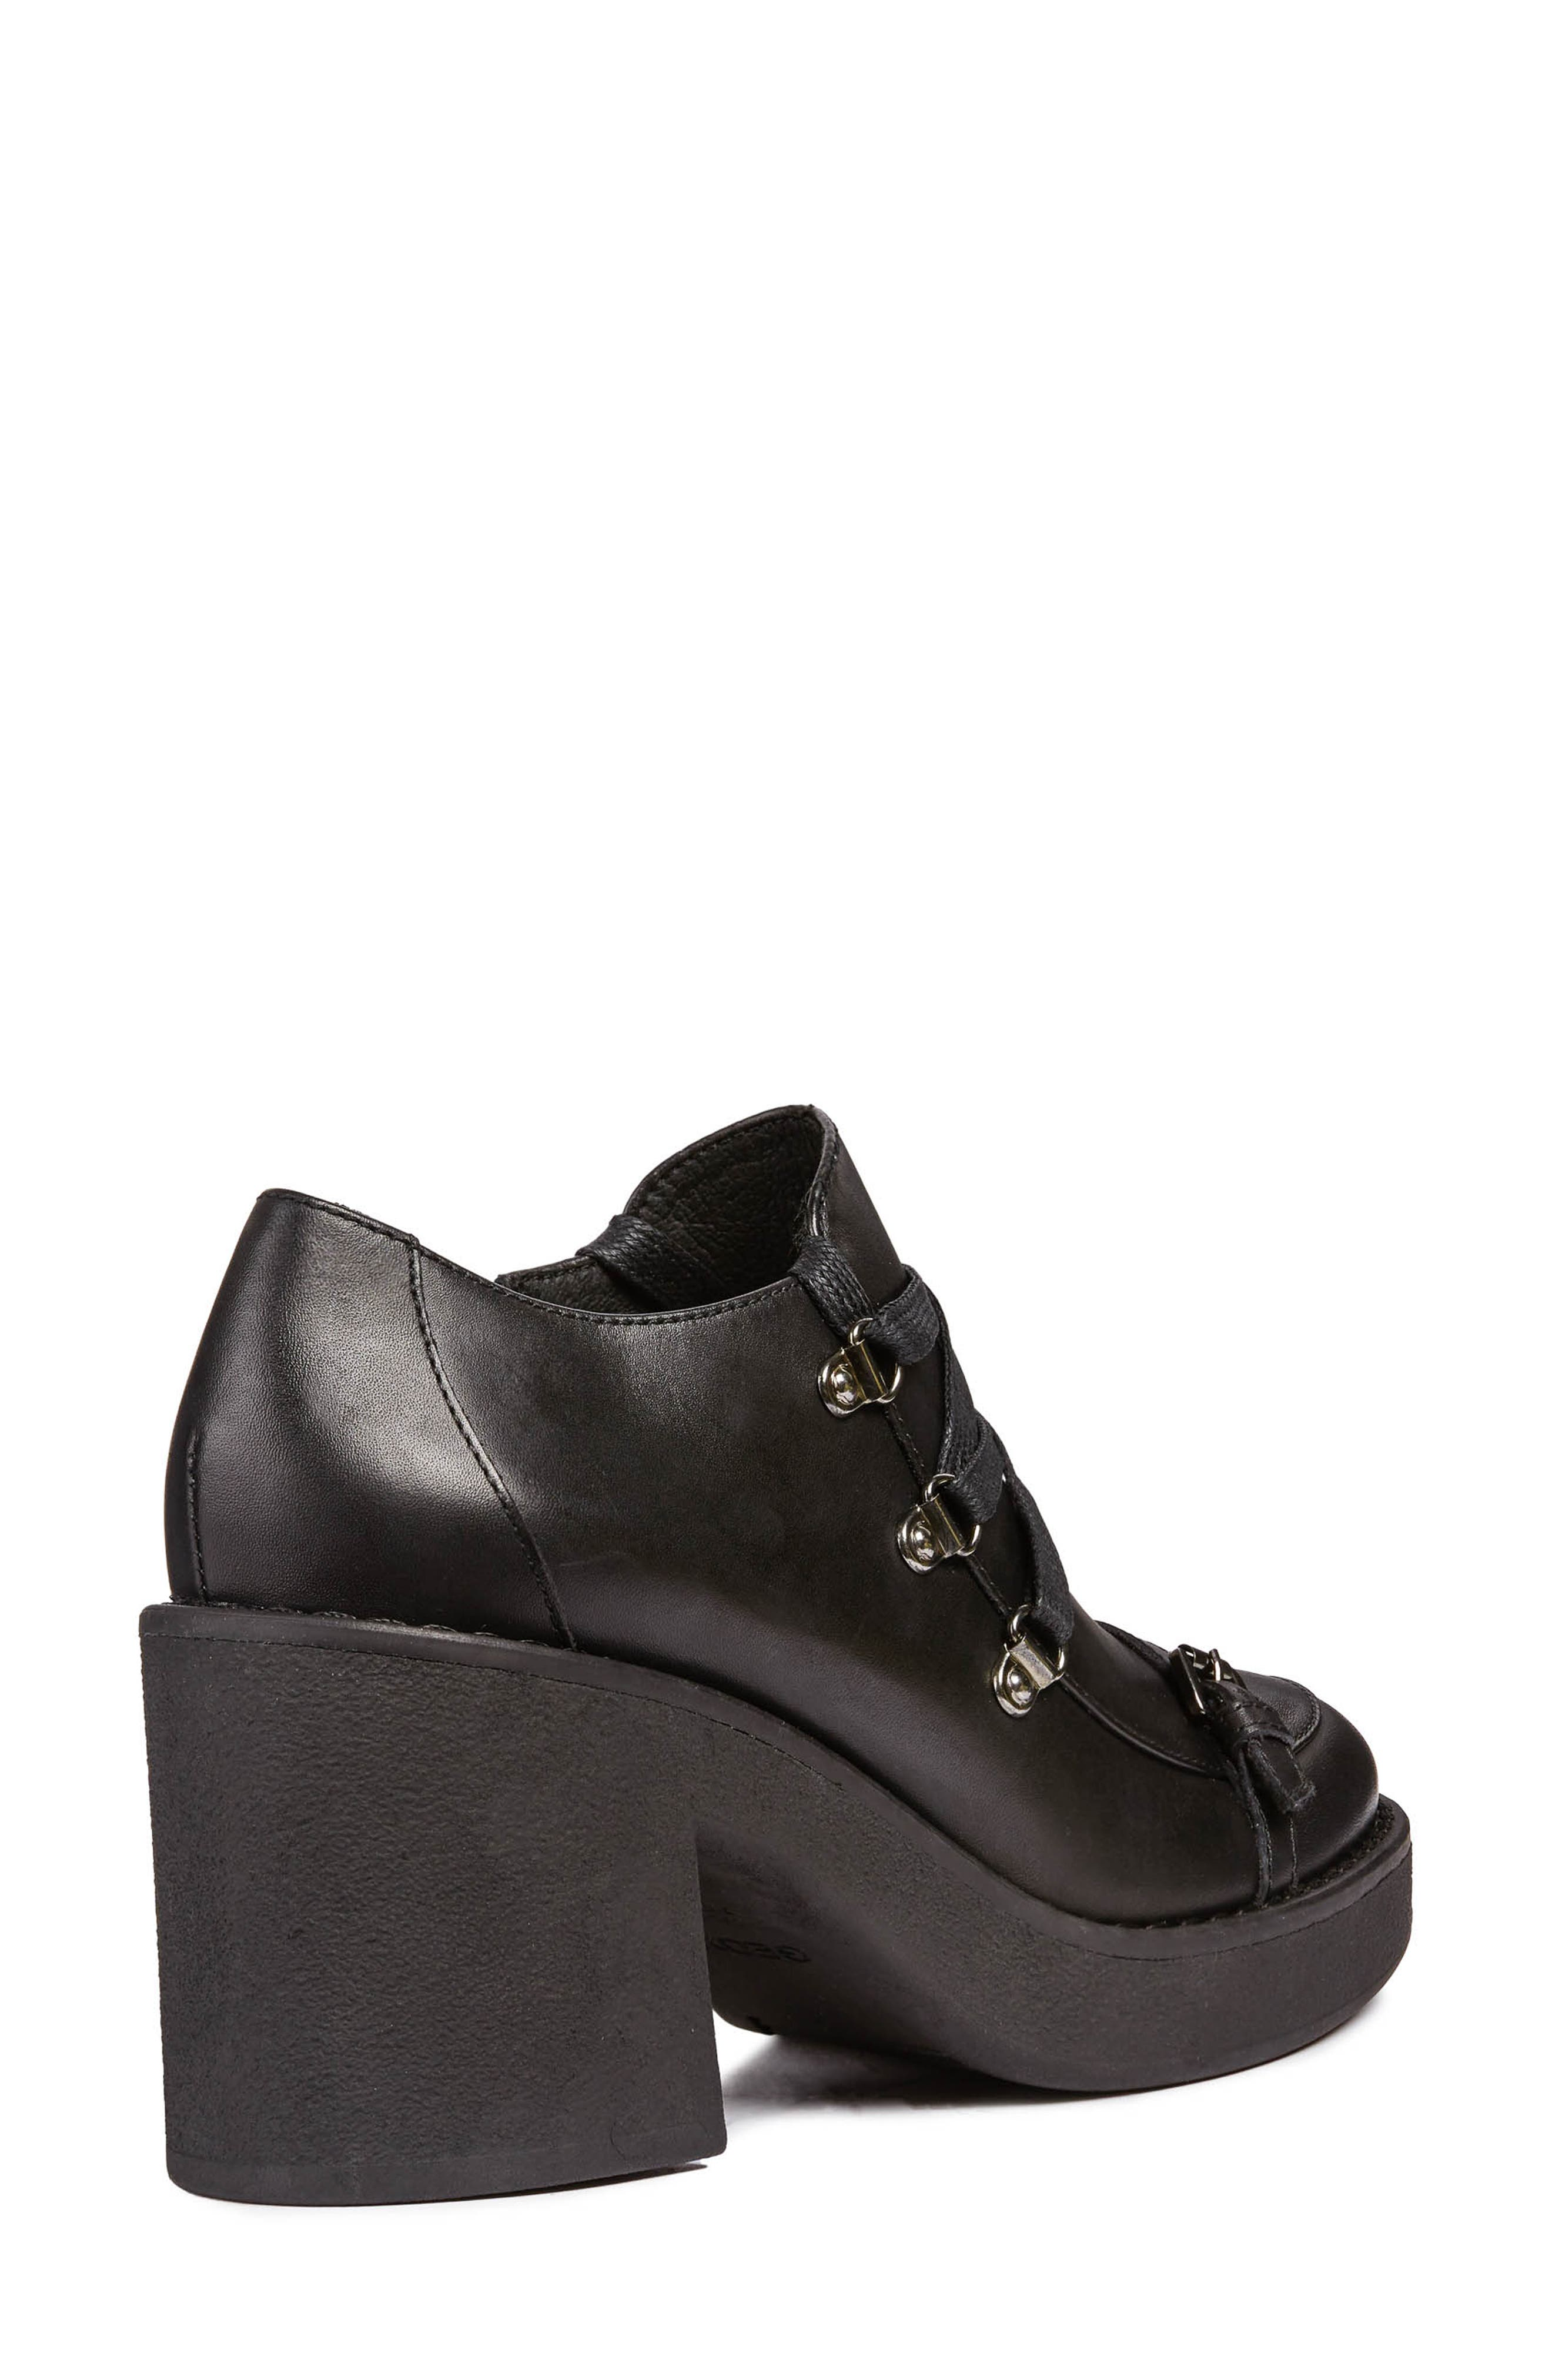 Adrya Bootie,                             Alternate thumbnail 6, color,                             BLACK LEATHER